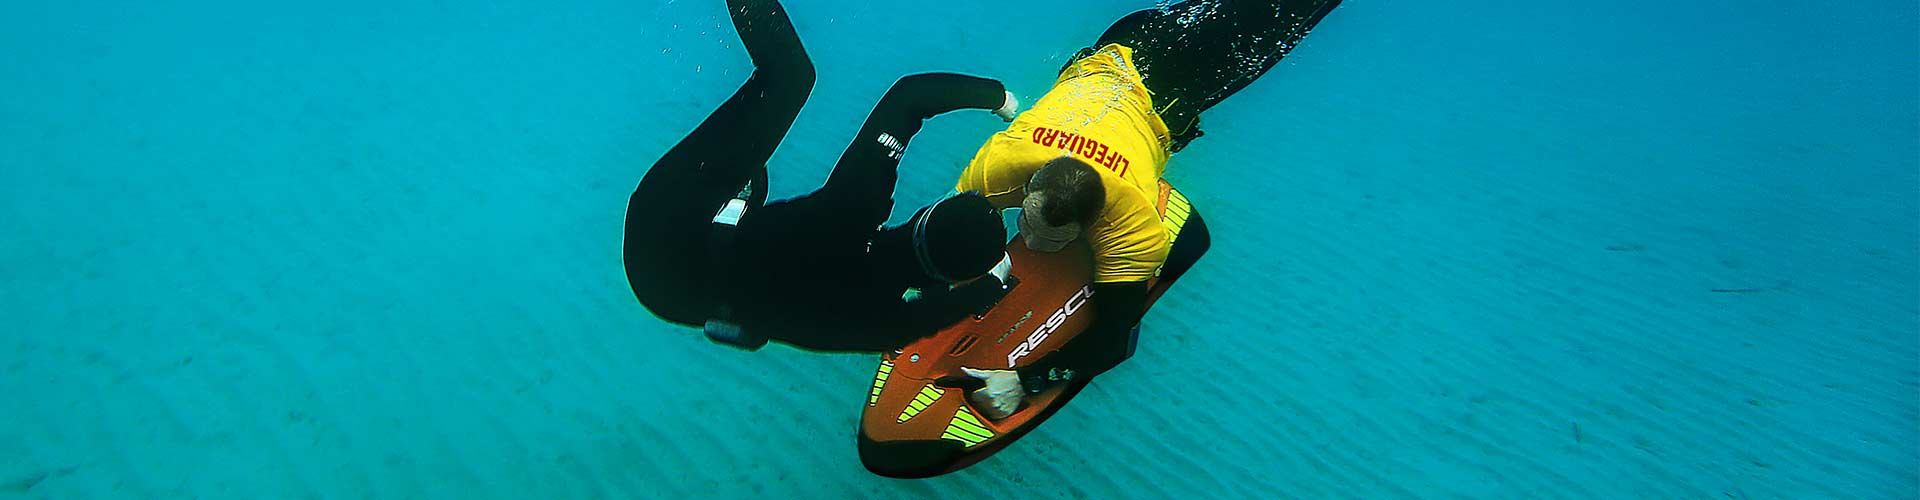 SEABOB-RESCUE-Underwater-missions